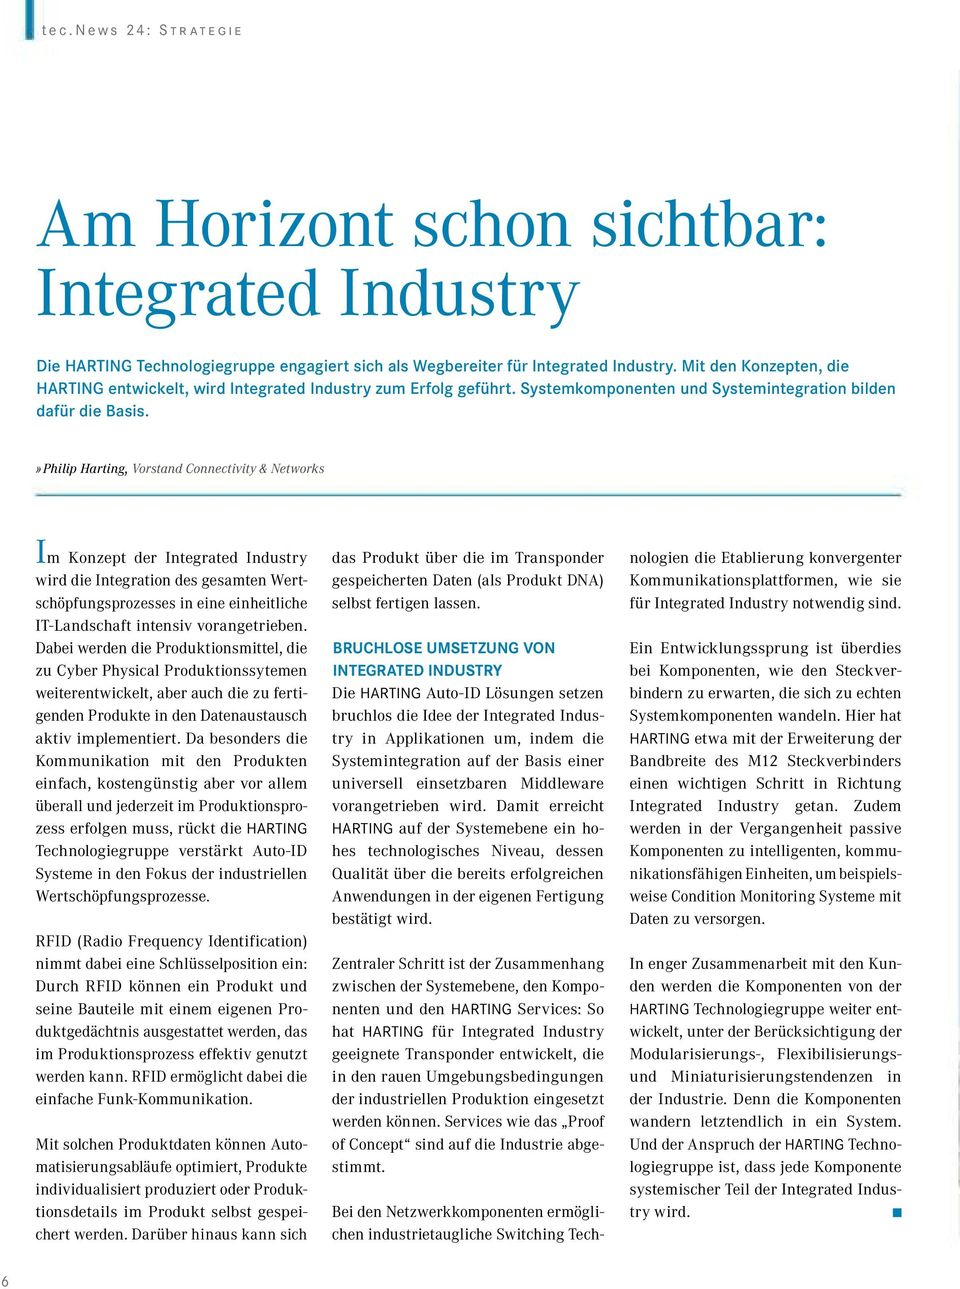 » Philip Harting, Vorstand Connectivity & Networks Im Konzept der Integrated Industry wird die Integration des gesamten Wertschöpfungsprozesses in eine einheitliche IT-Landschaft intensiv